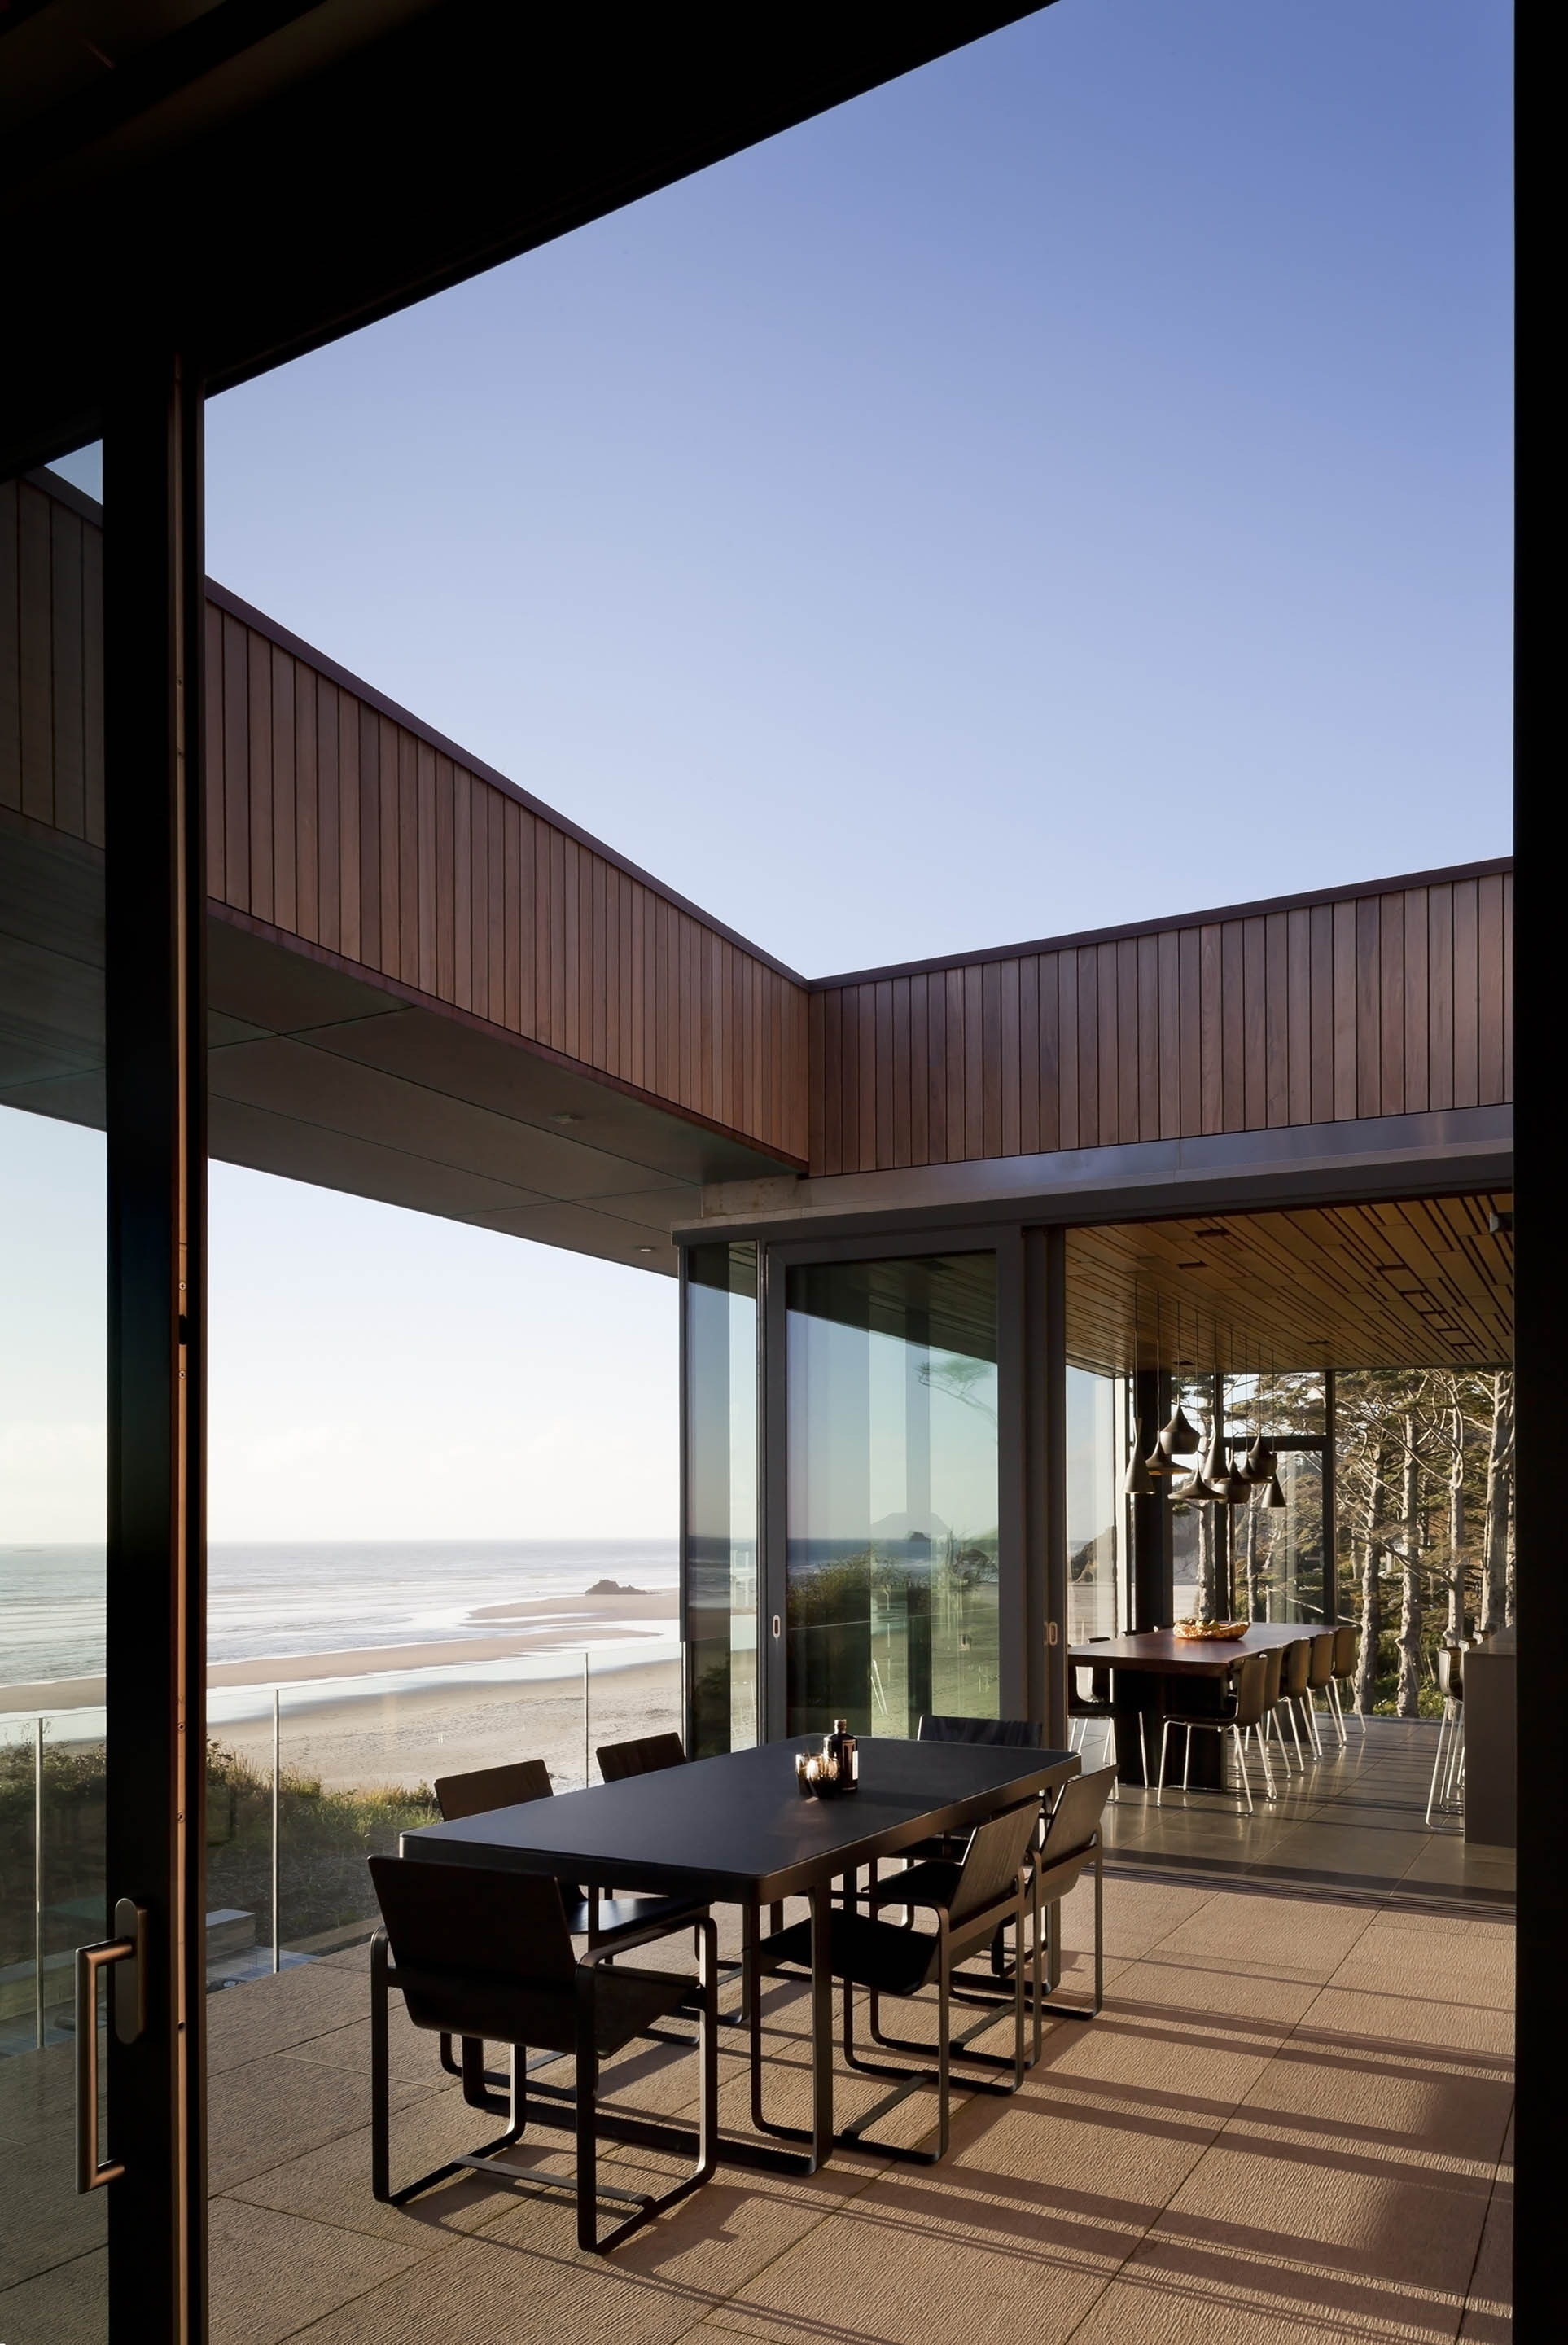 Finley Beach House by Bora Architects